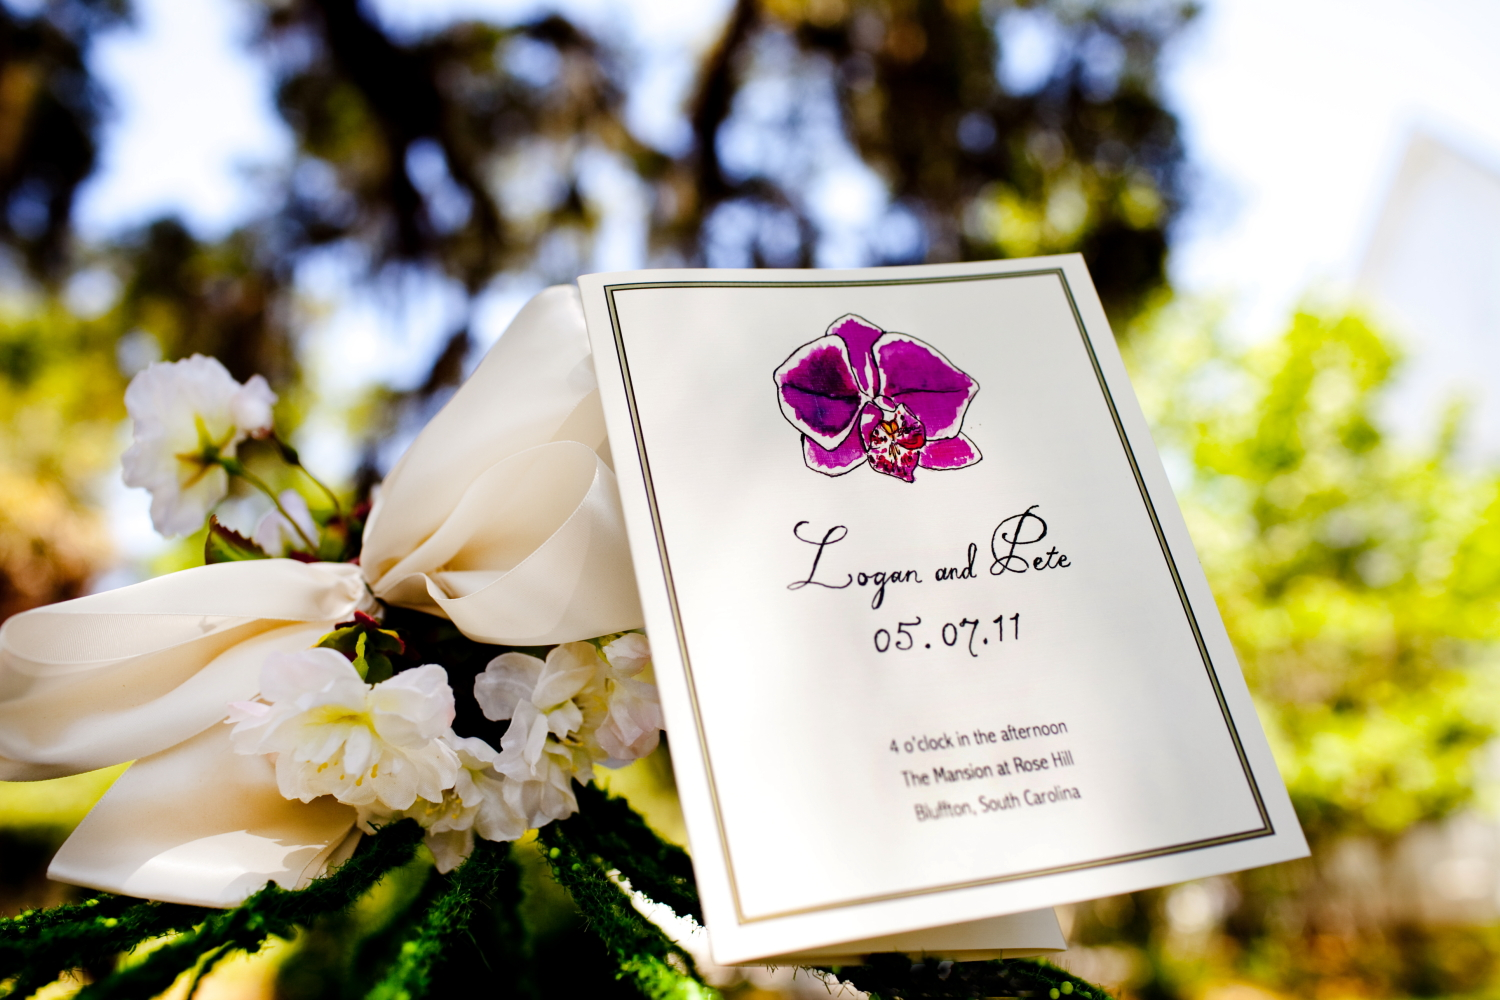 LAURA ANN orchid wedding program for Logan and Pete. Photo by Tracy Turpen.